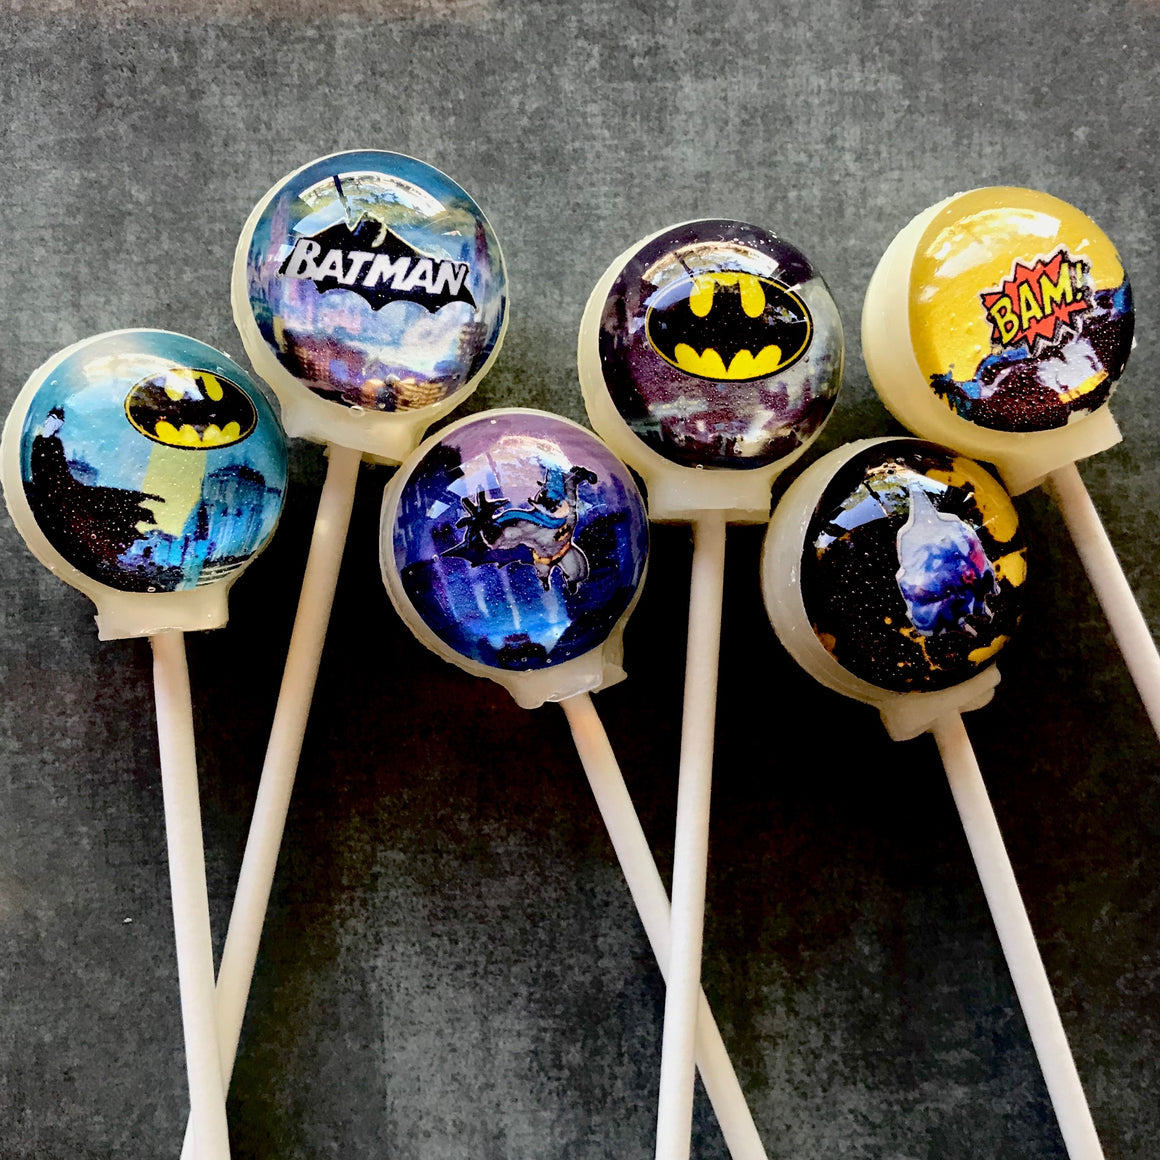 3D Batman super hero lollipops by I Want Candy!